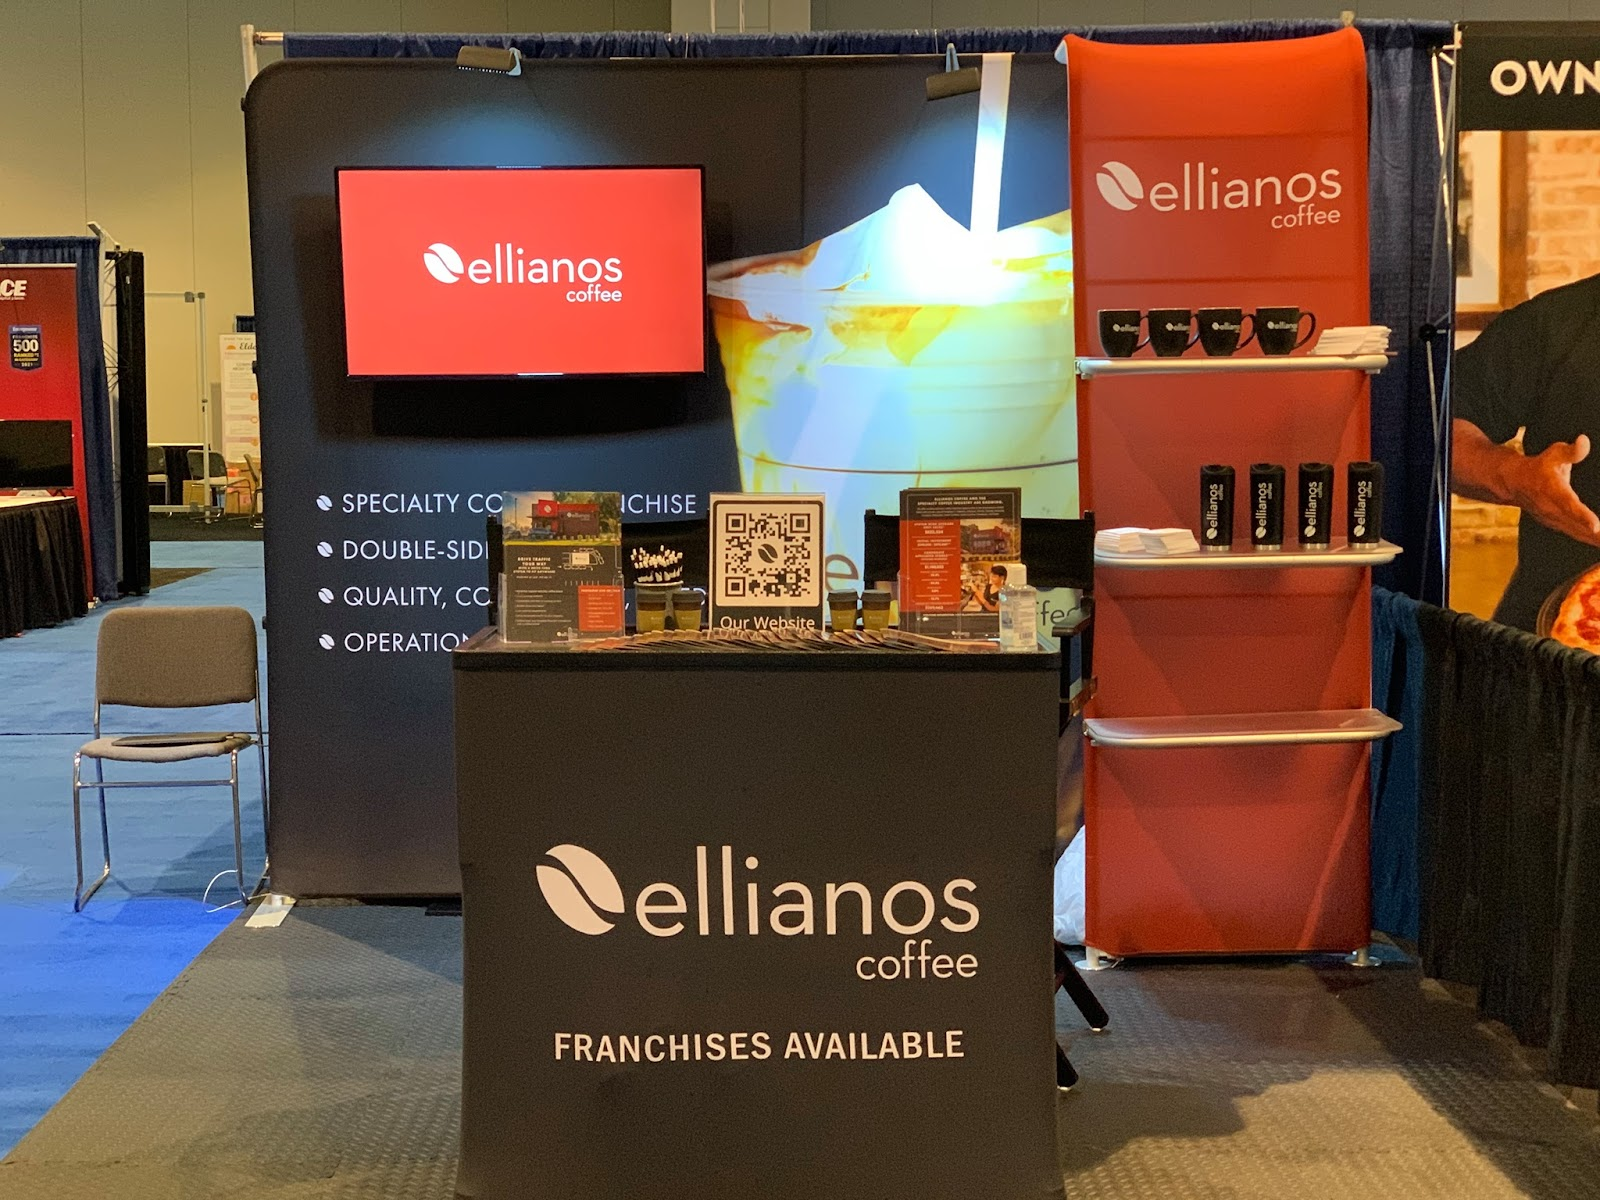 10x10 Trade Show Display with Monitor and Merchandiser